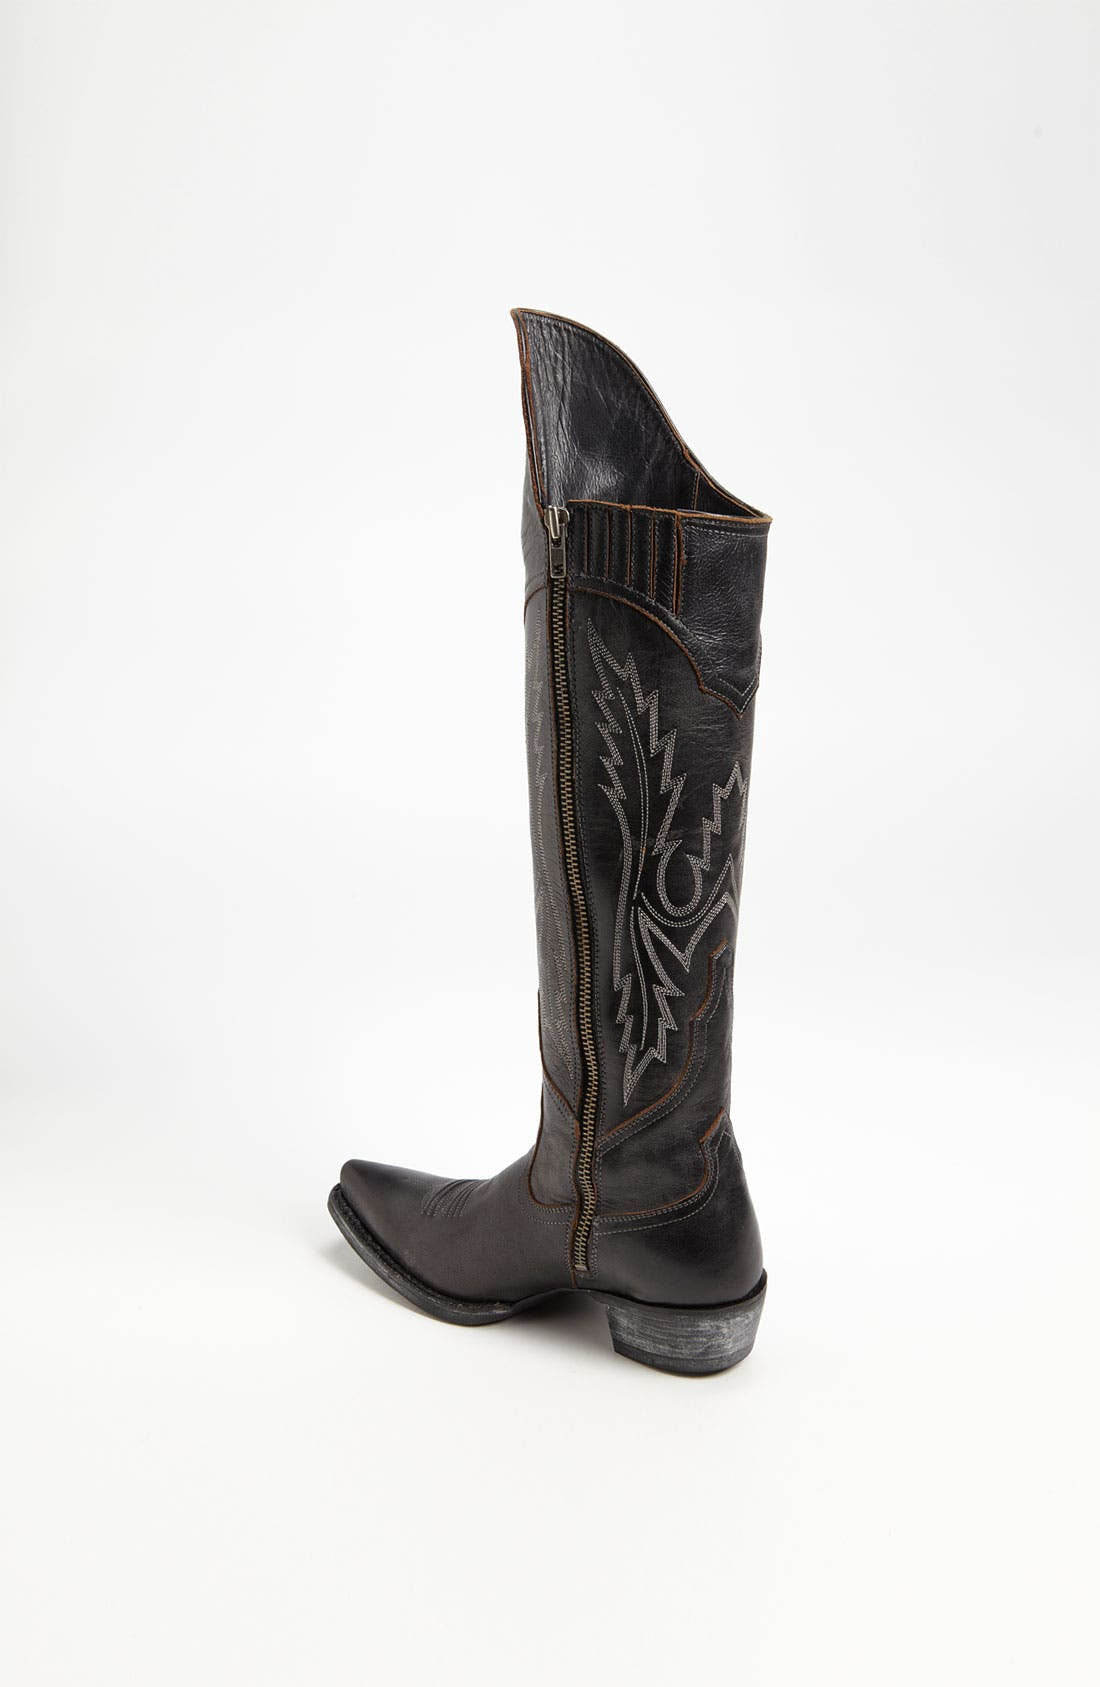 ARIAT,                             'Murrieta' Boot,                             Alternate thumbnail 3, color,                             003